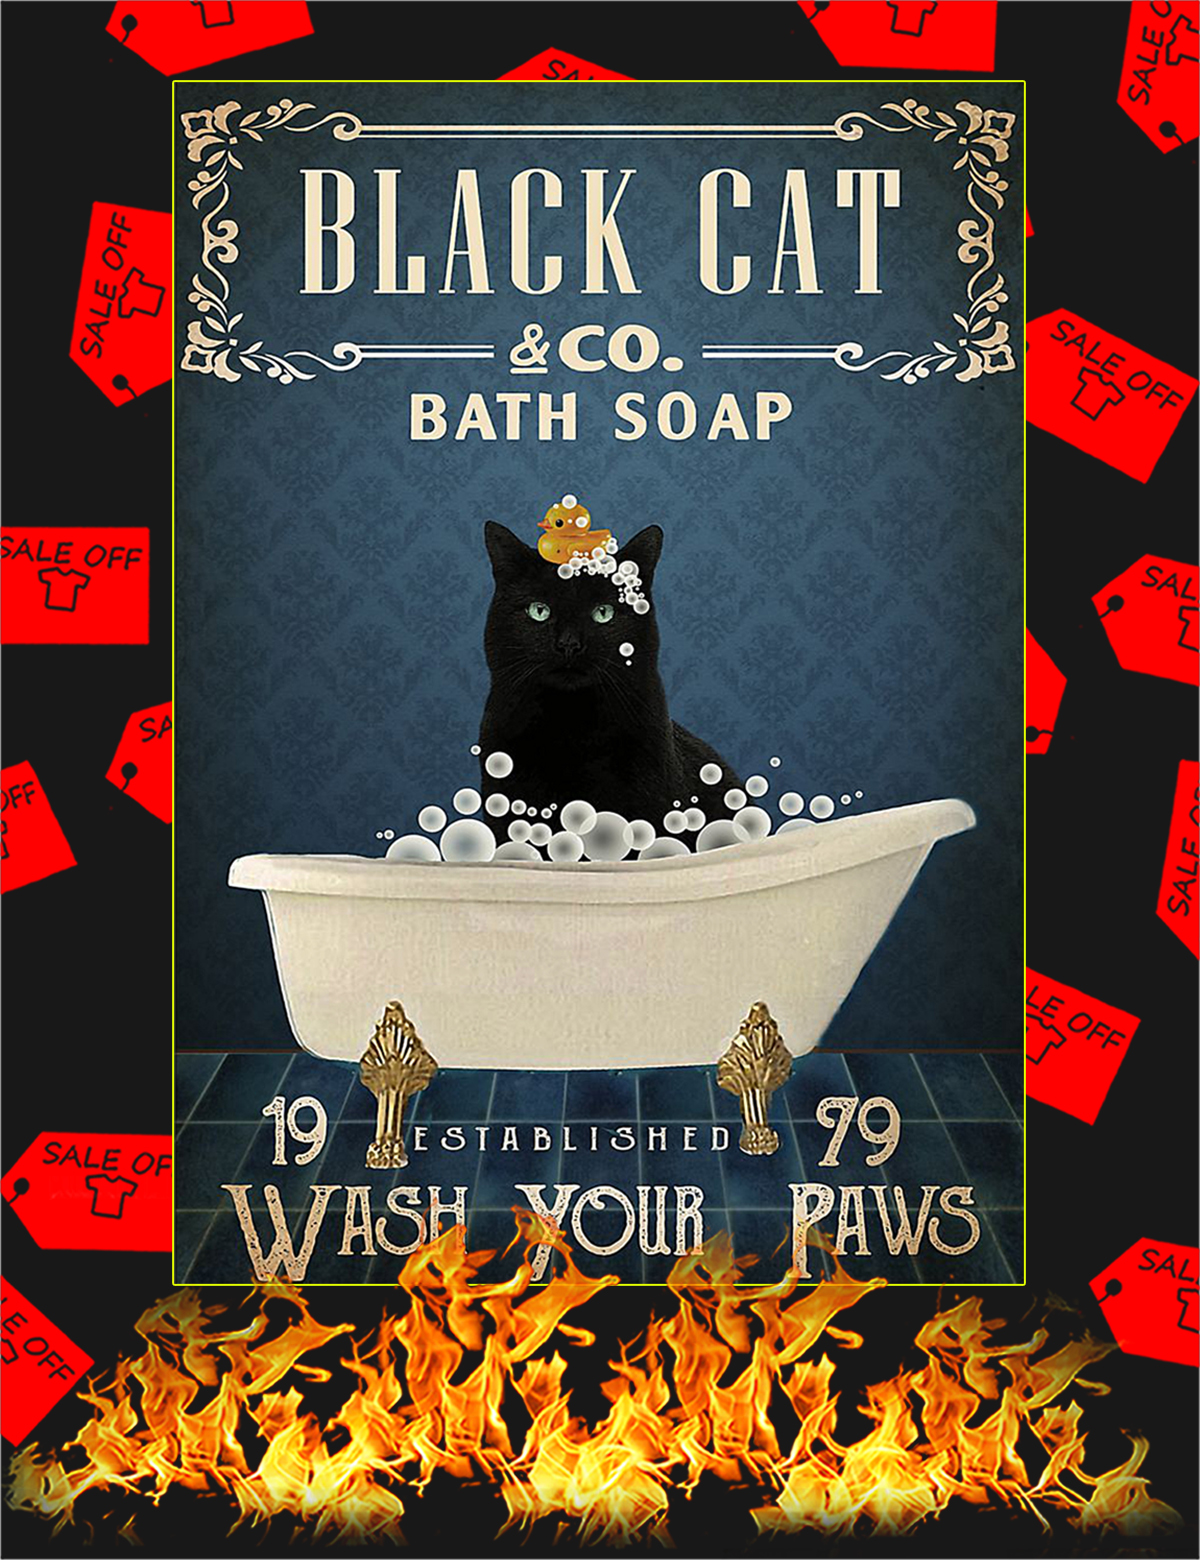 Black cat company bath soap poster - A1